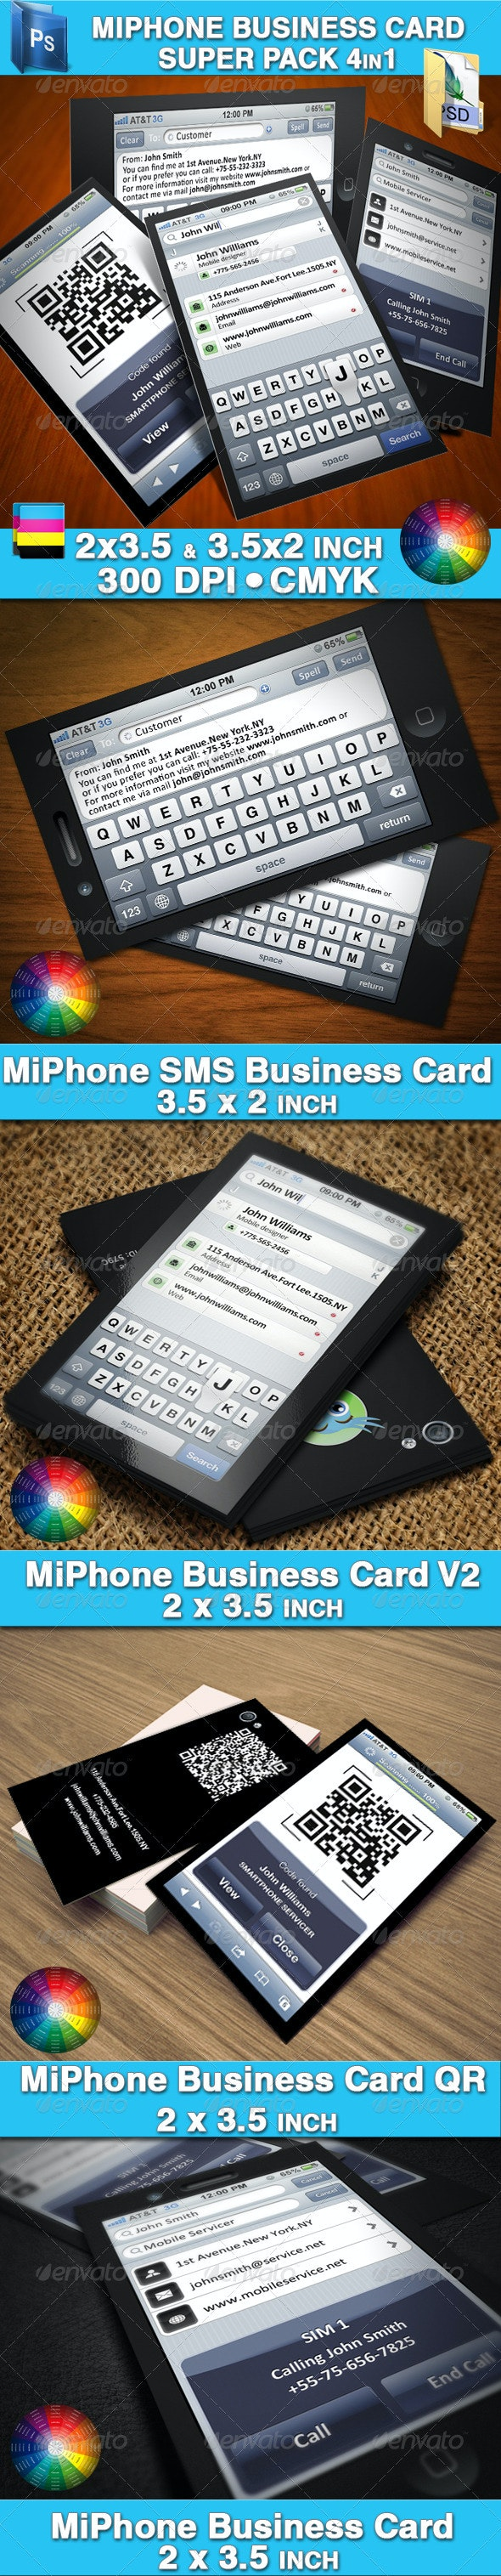 MiPhone Business Card Super Pack 4in1 - Creative Business Cards